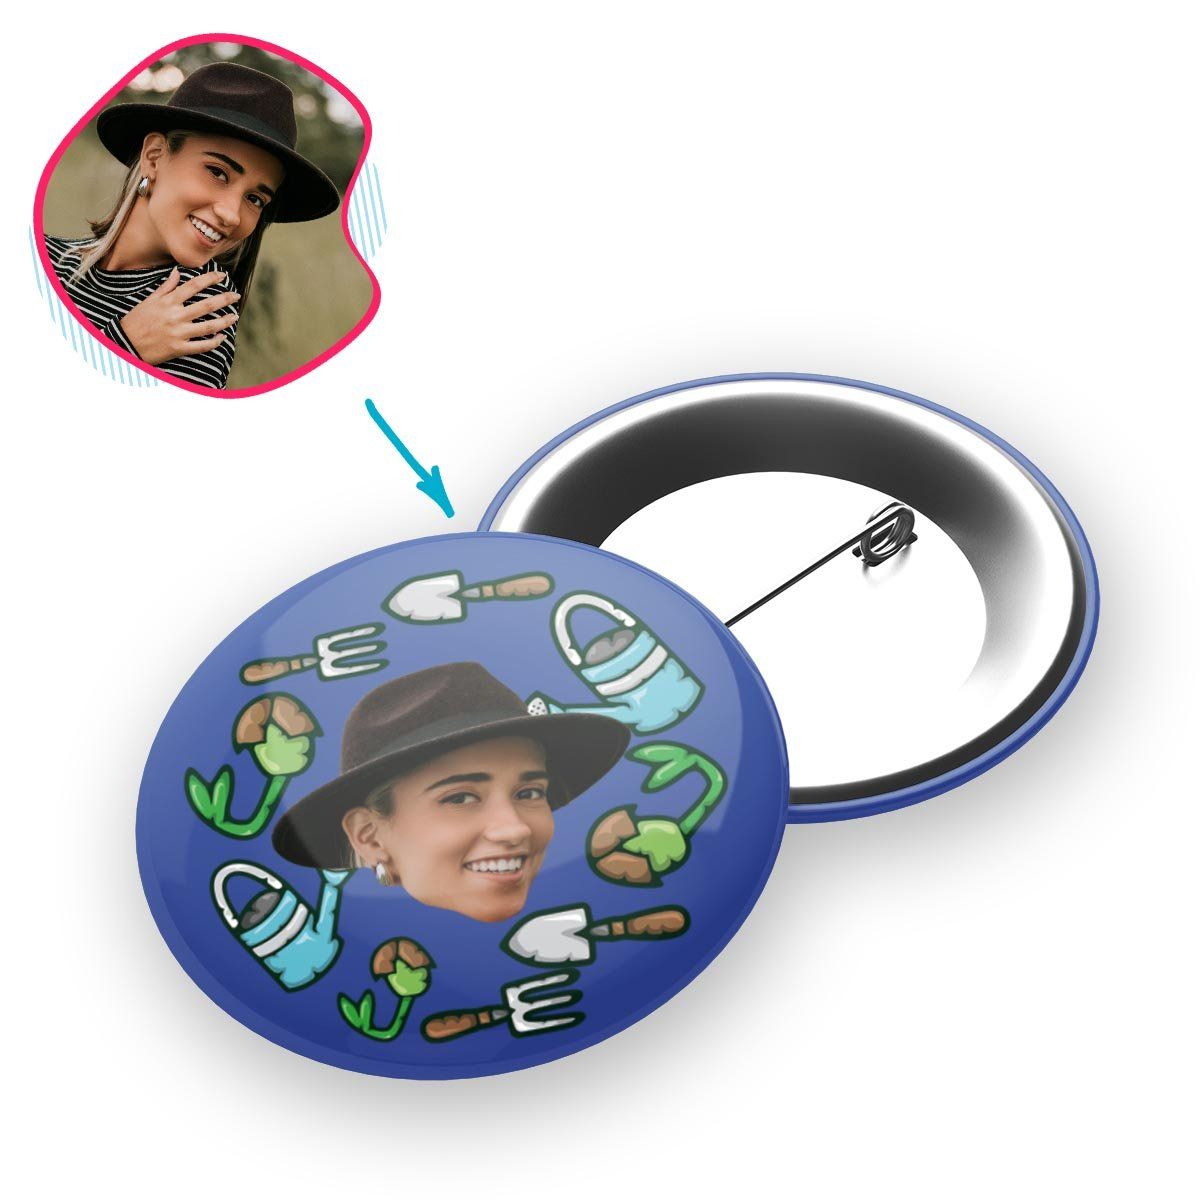 darkblue Gardening pin personalized with photo of face printed on it